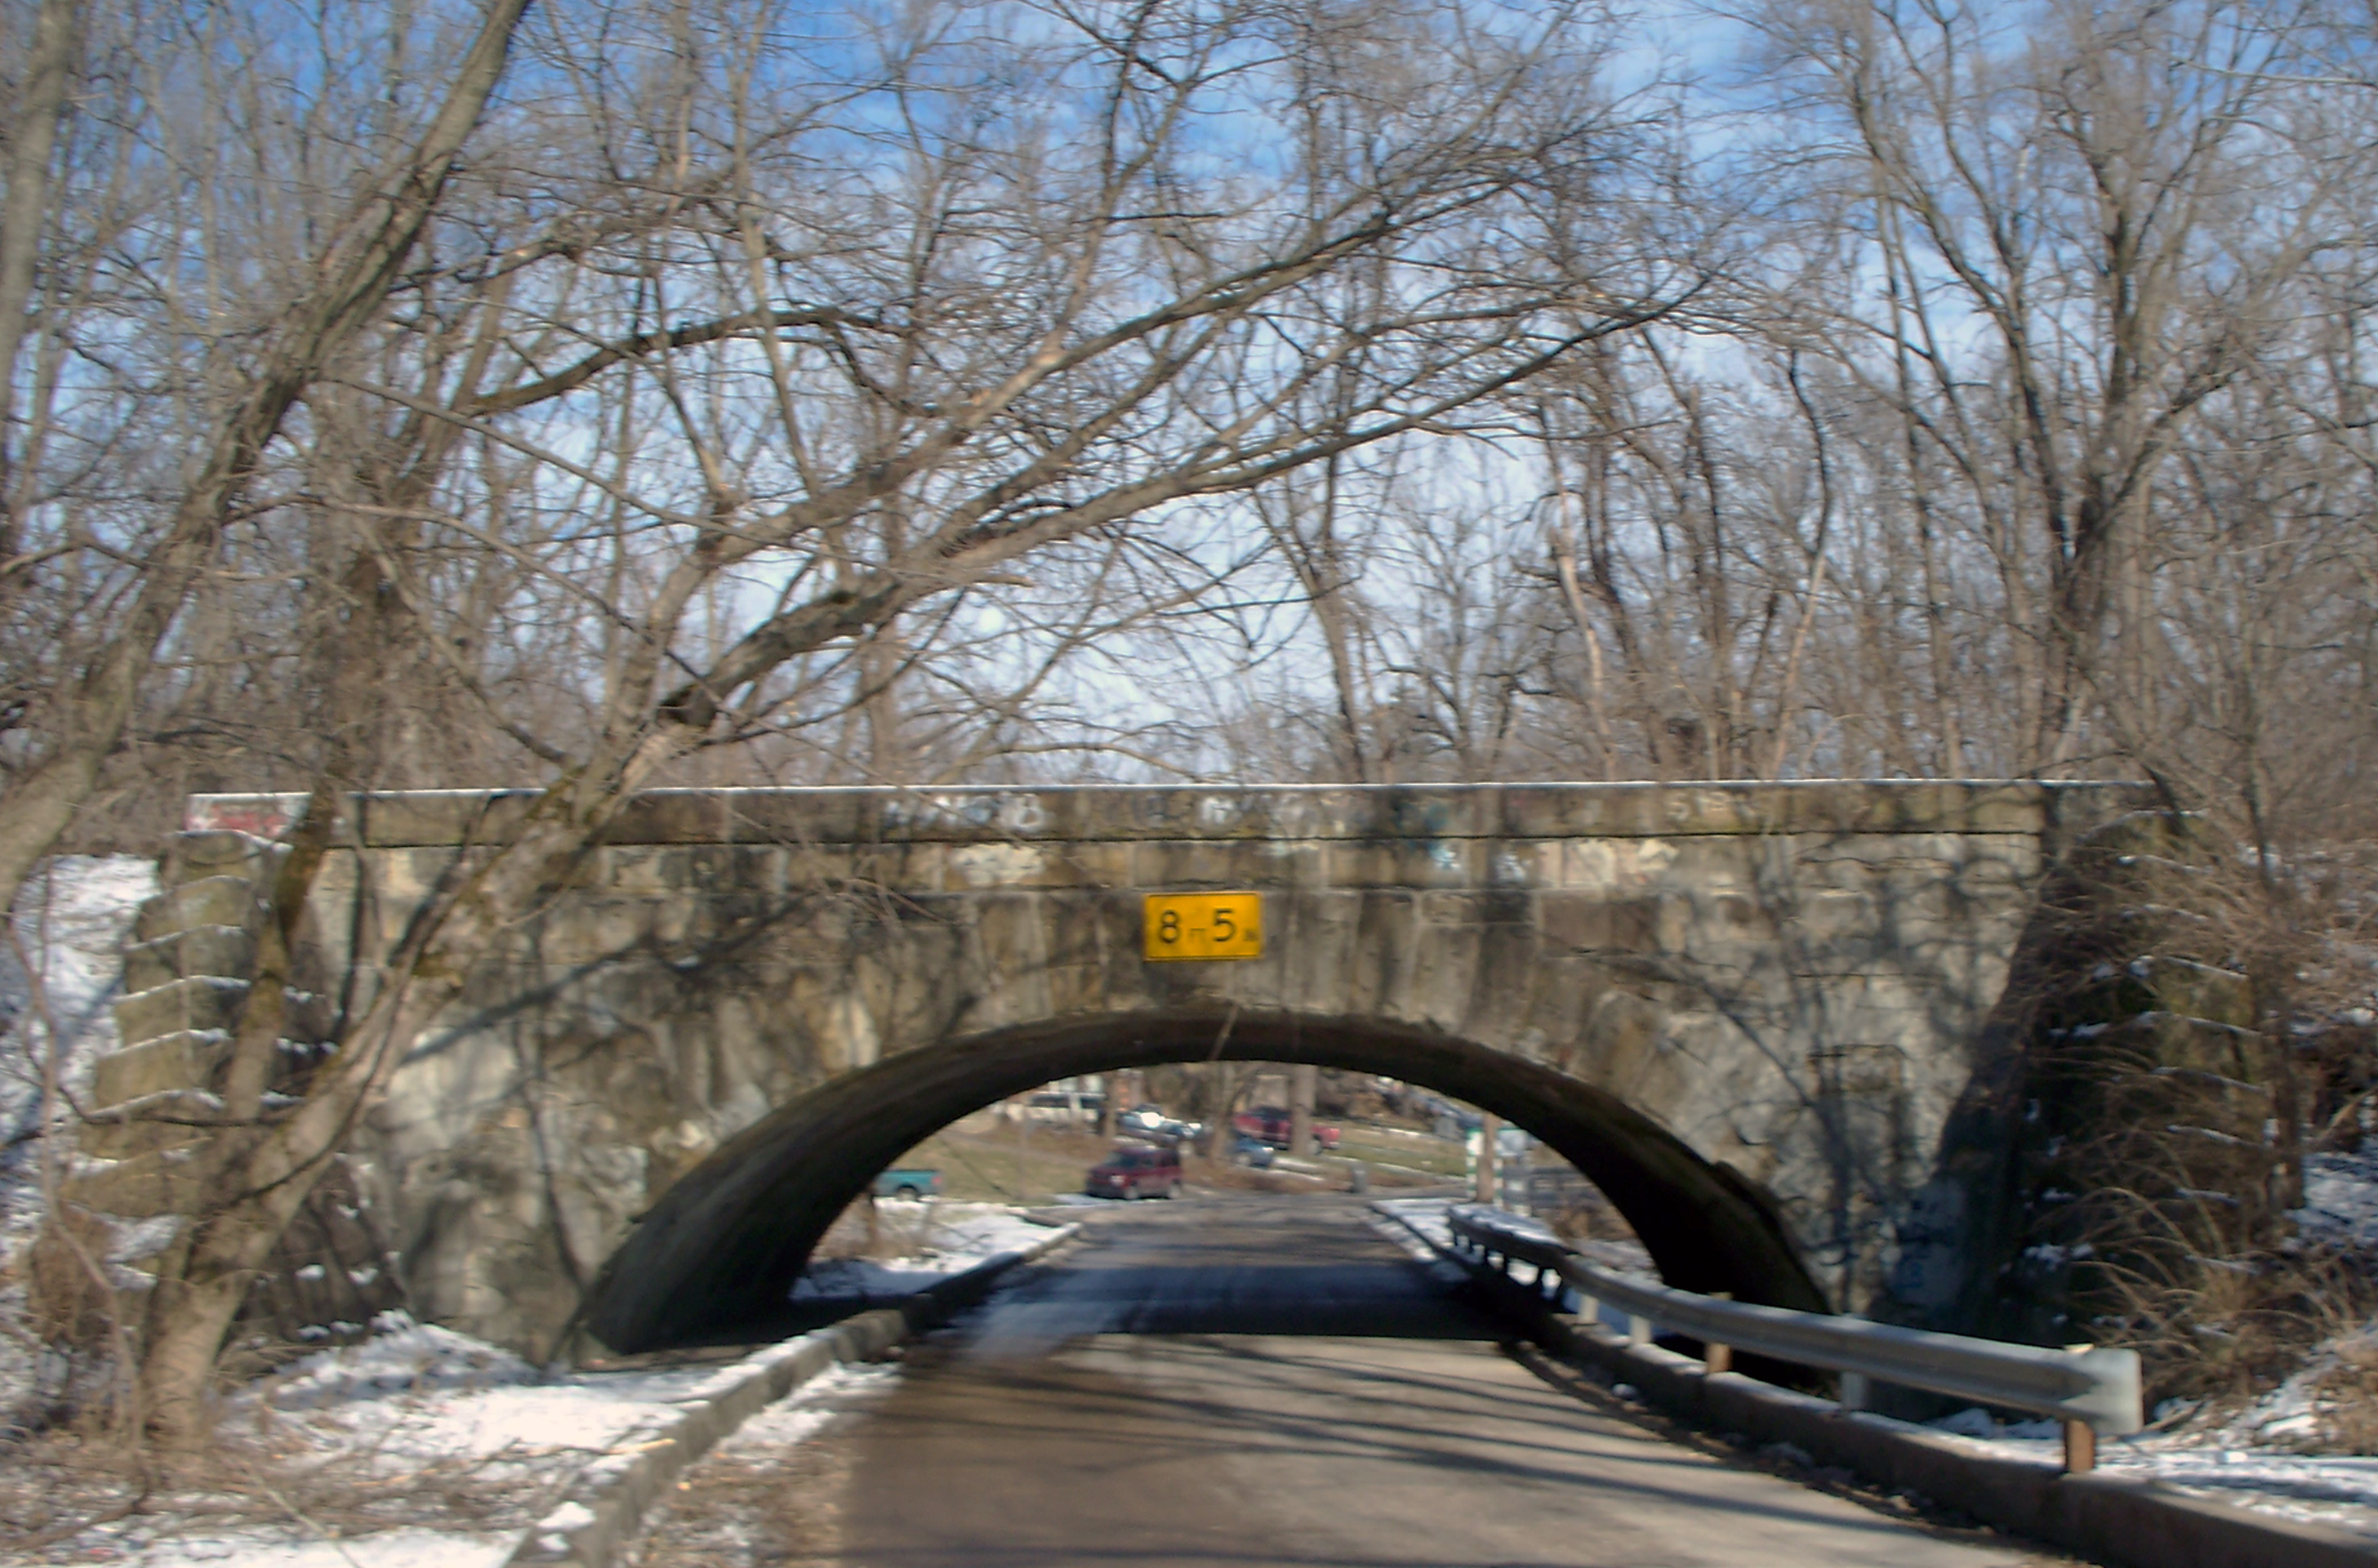 HI Mailbag:  Stone Bridge Over Pleasant Run